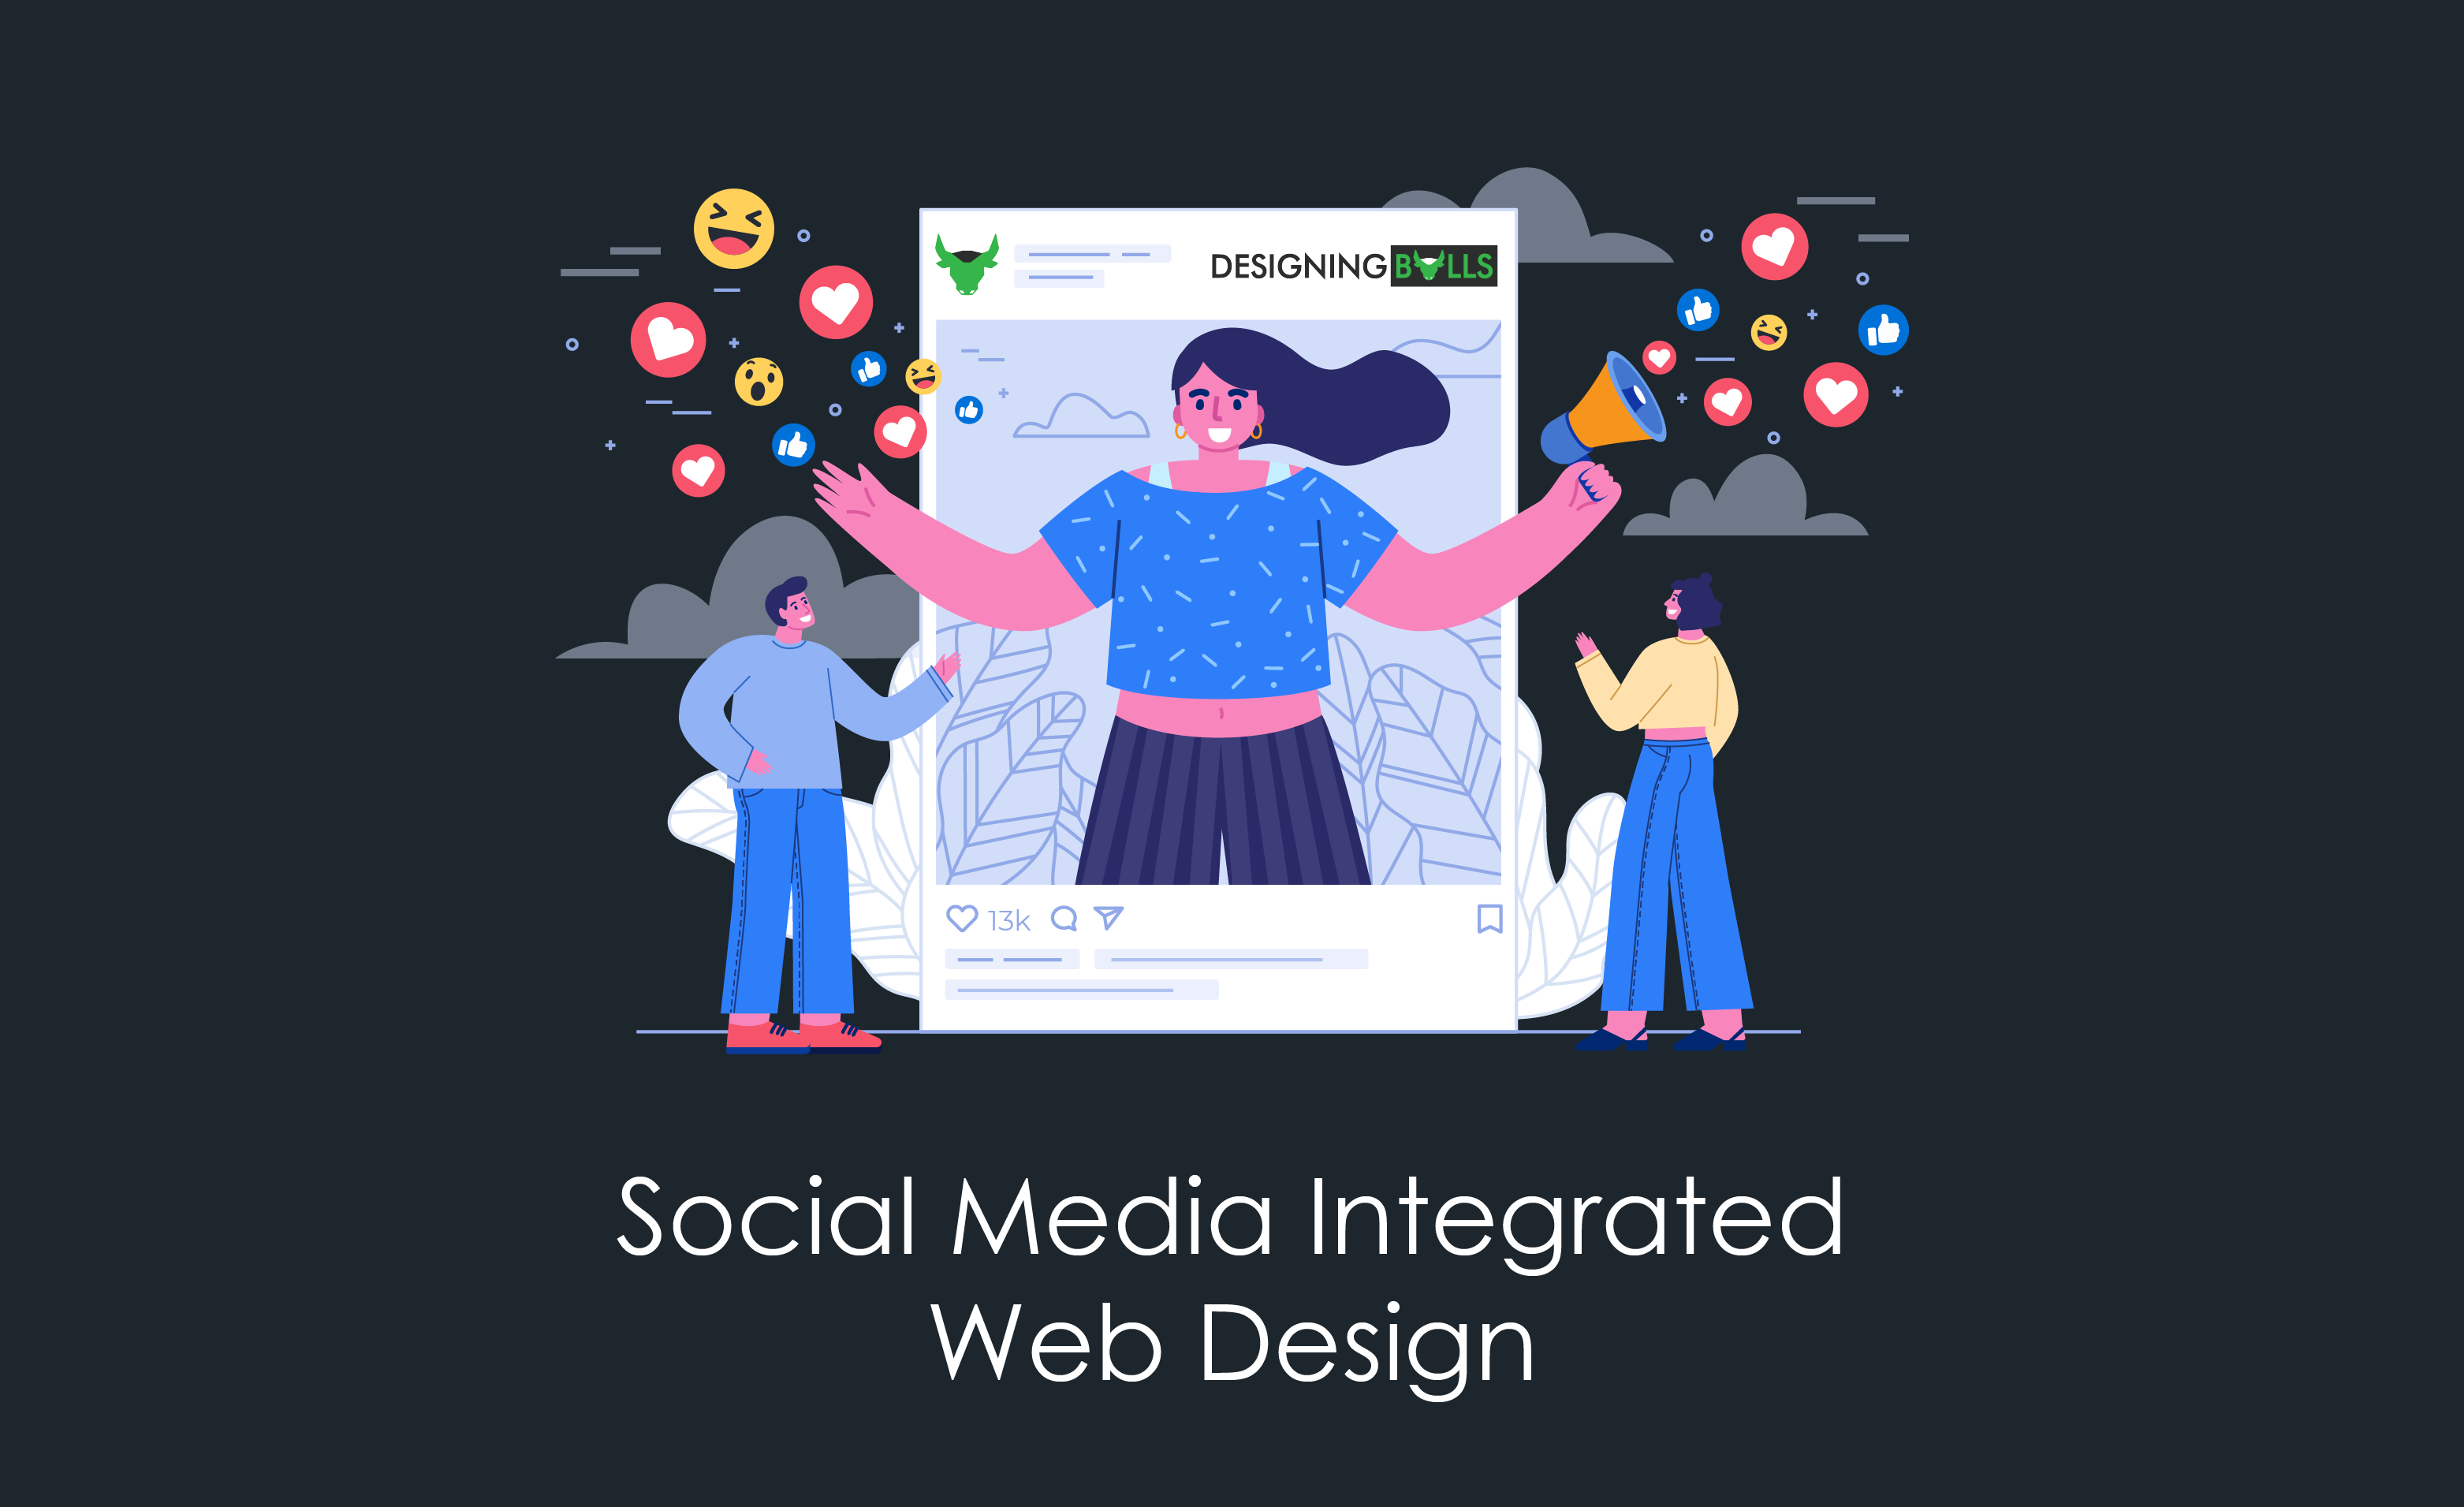 How to add social media integration in web design?